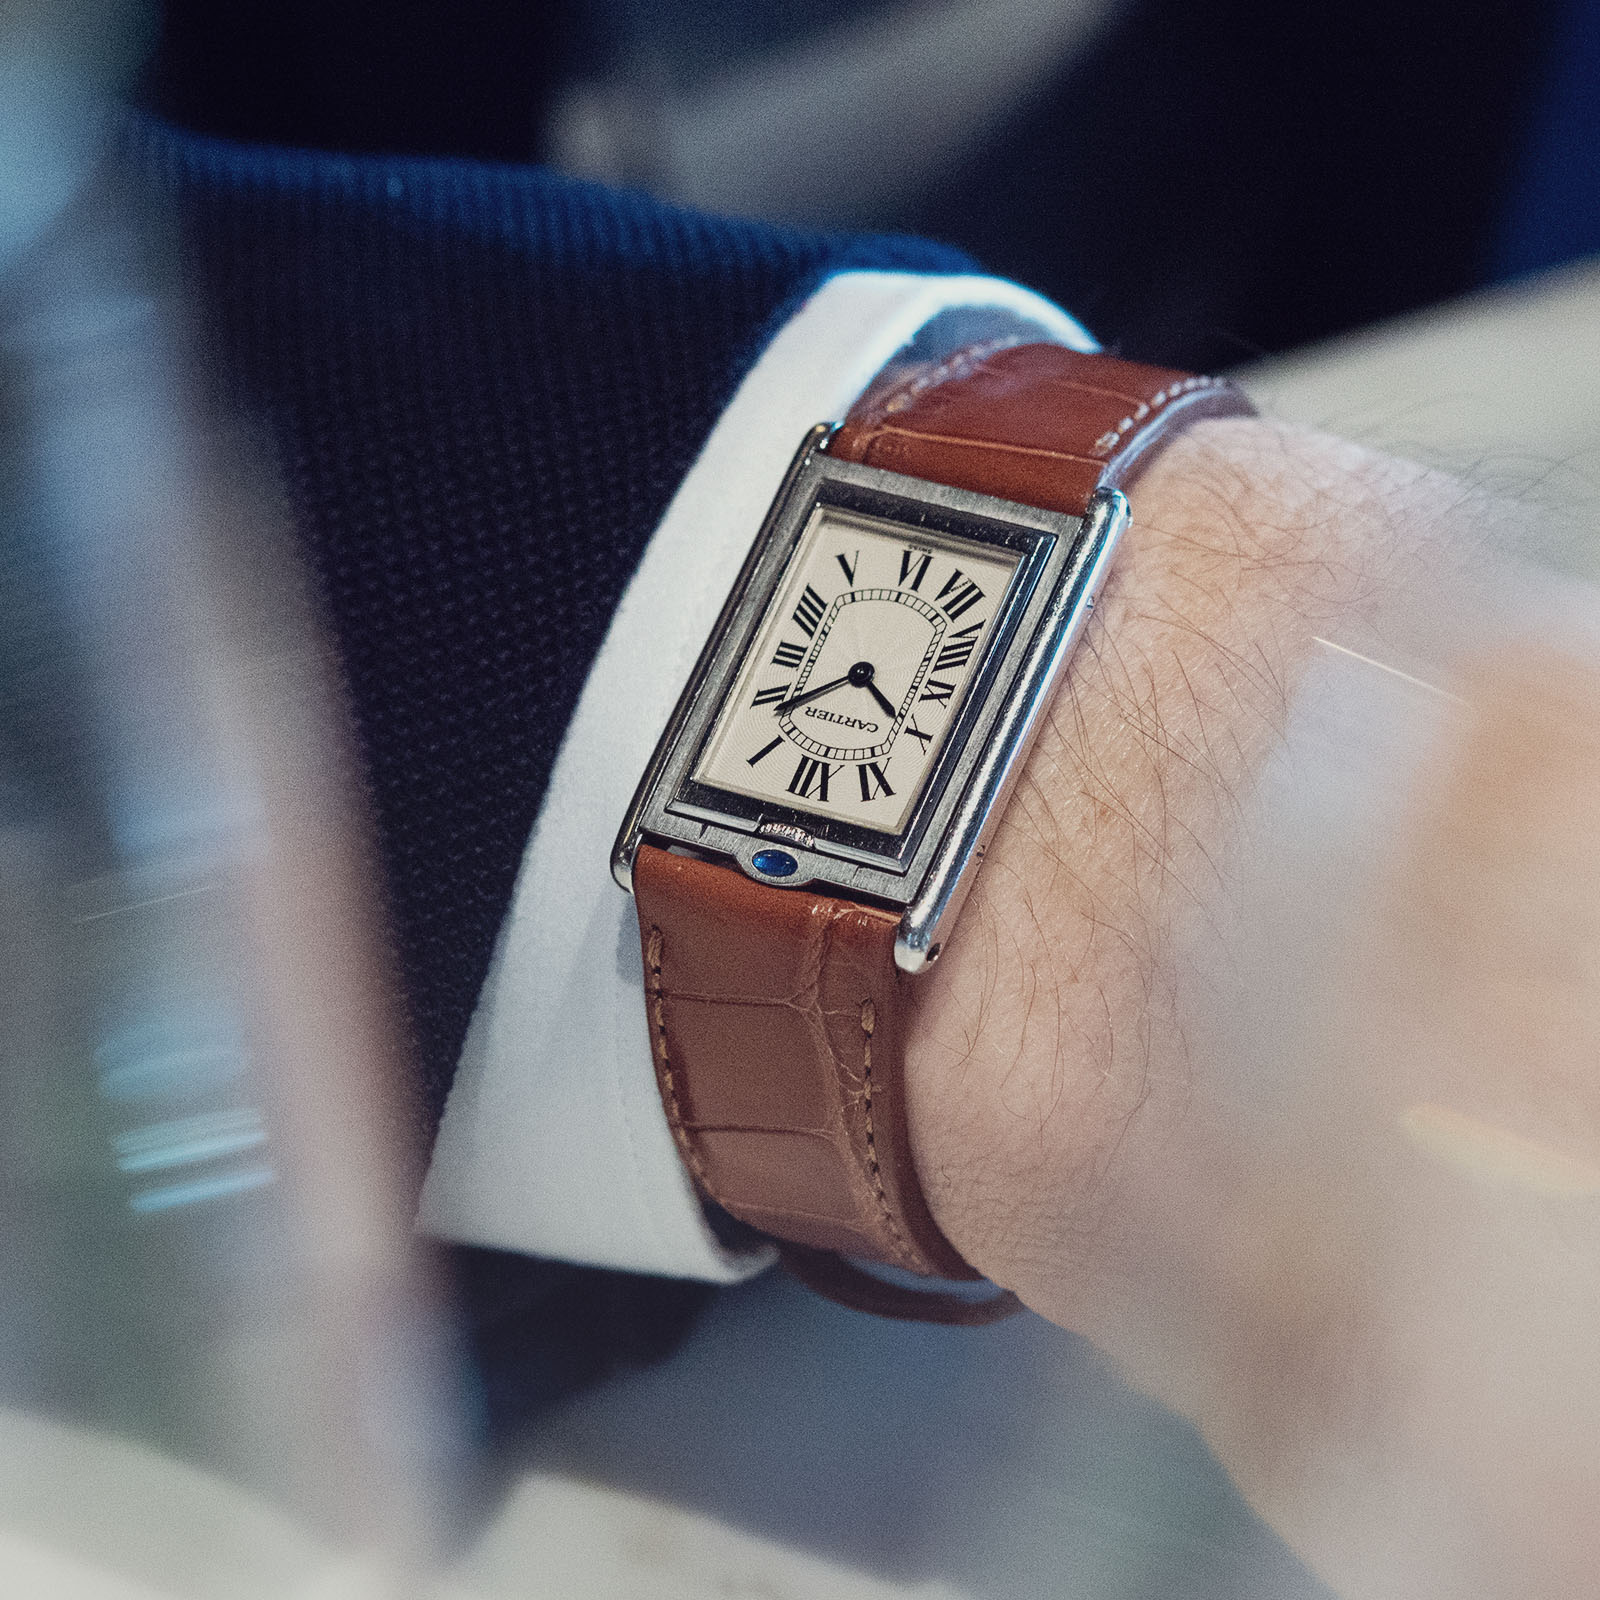 Style-Up - A Smart Wrist Game with some elegant leather watch straps from Bulang and Sons